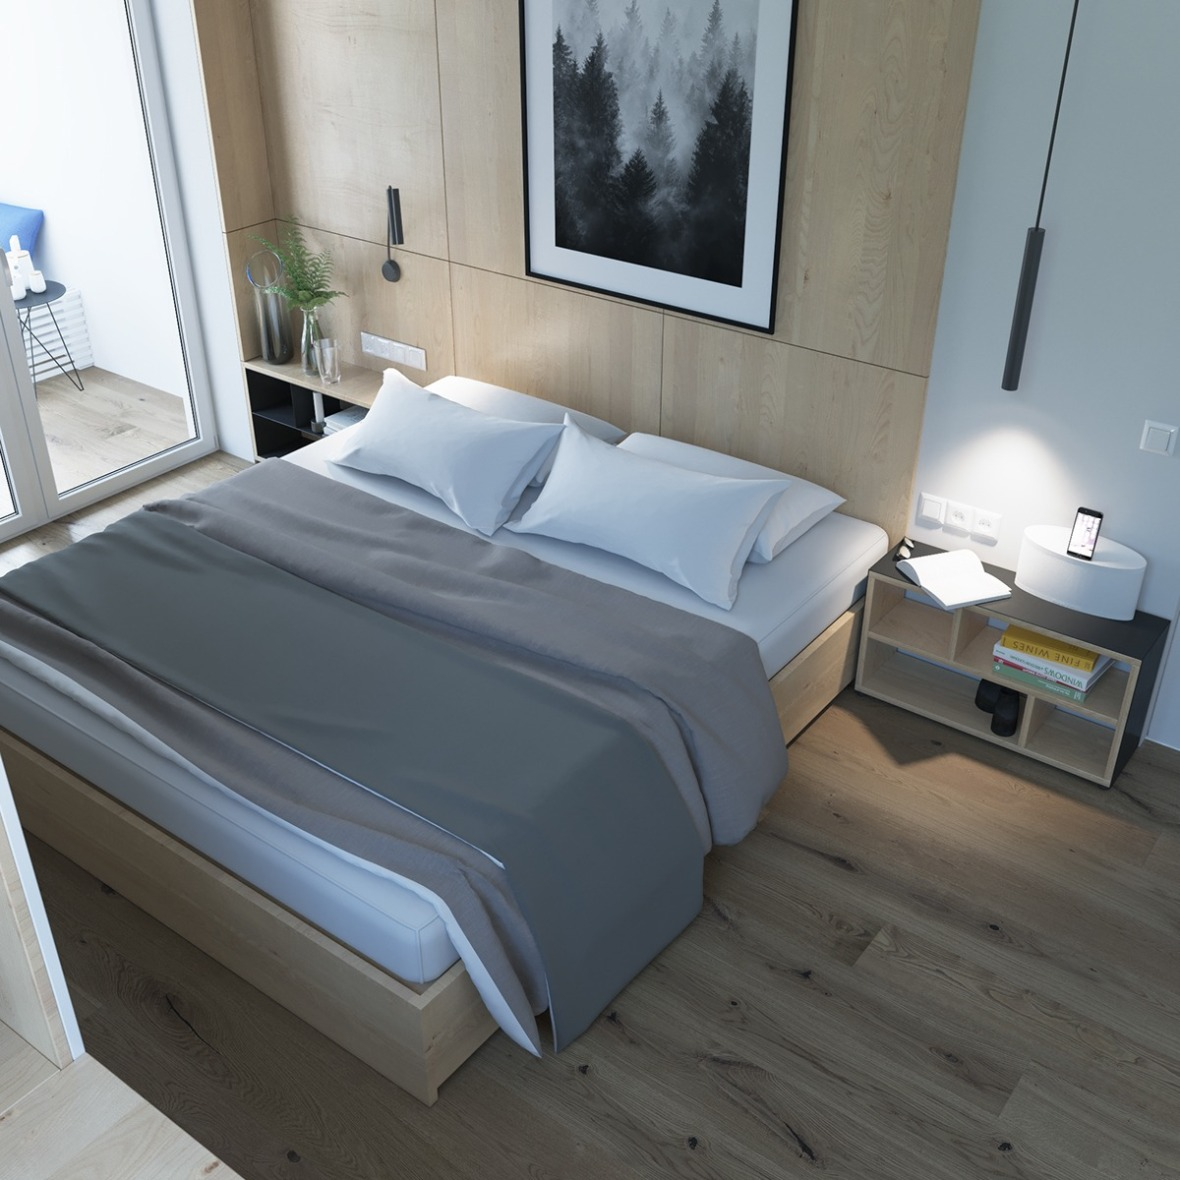 2simple-bedroom-white-sheets-gray-bedding